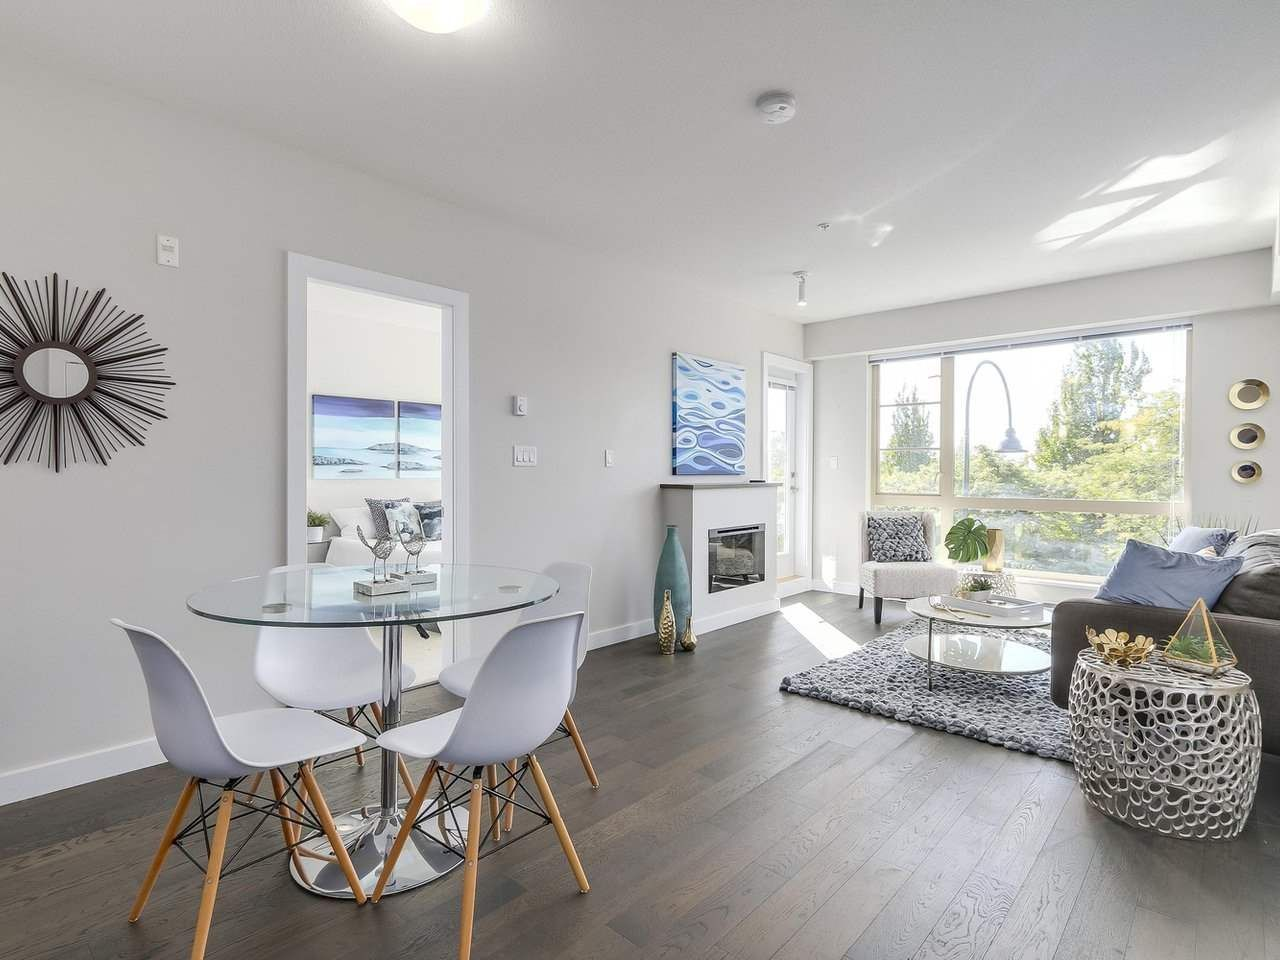 """Main Photo: 302 1330 MARINE Drive in North Vancouver: Pemberton NV Condo for sale in """"The Drive"""" : MLS®# R2208015"""